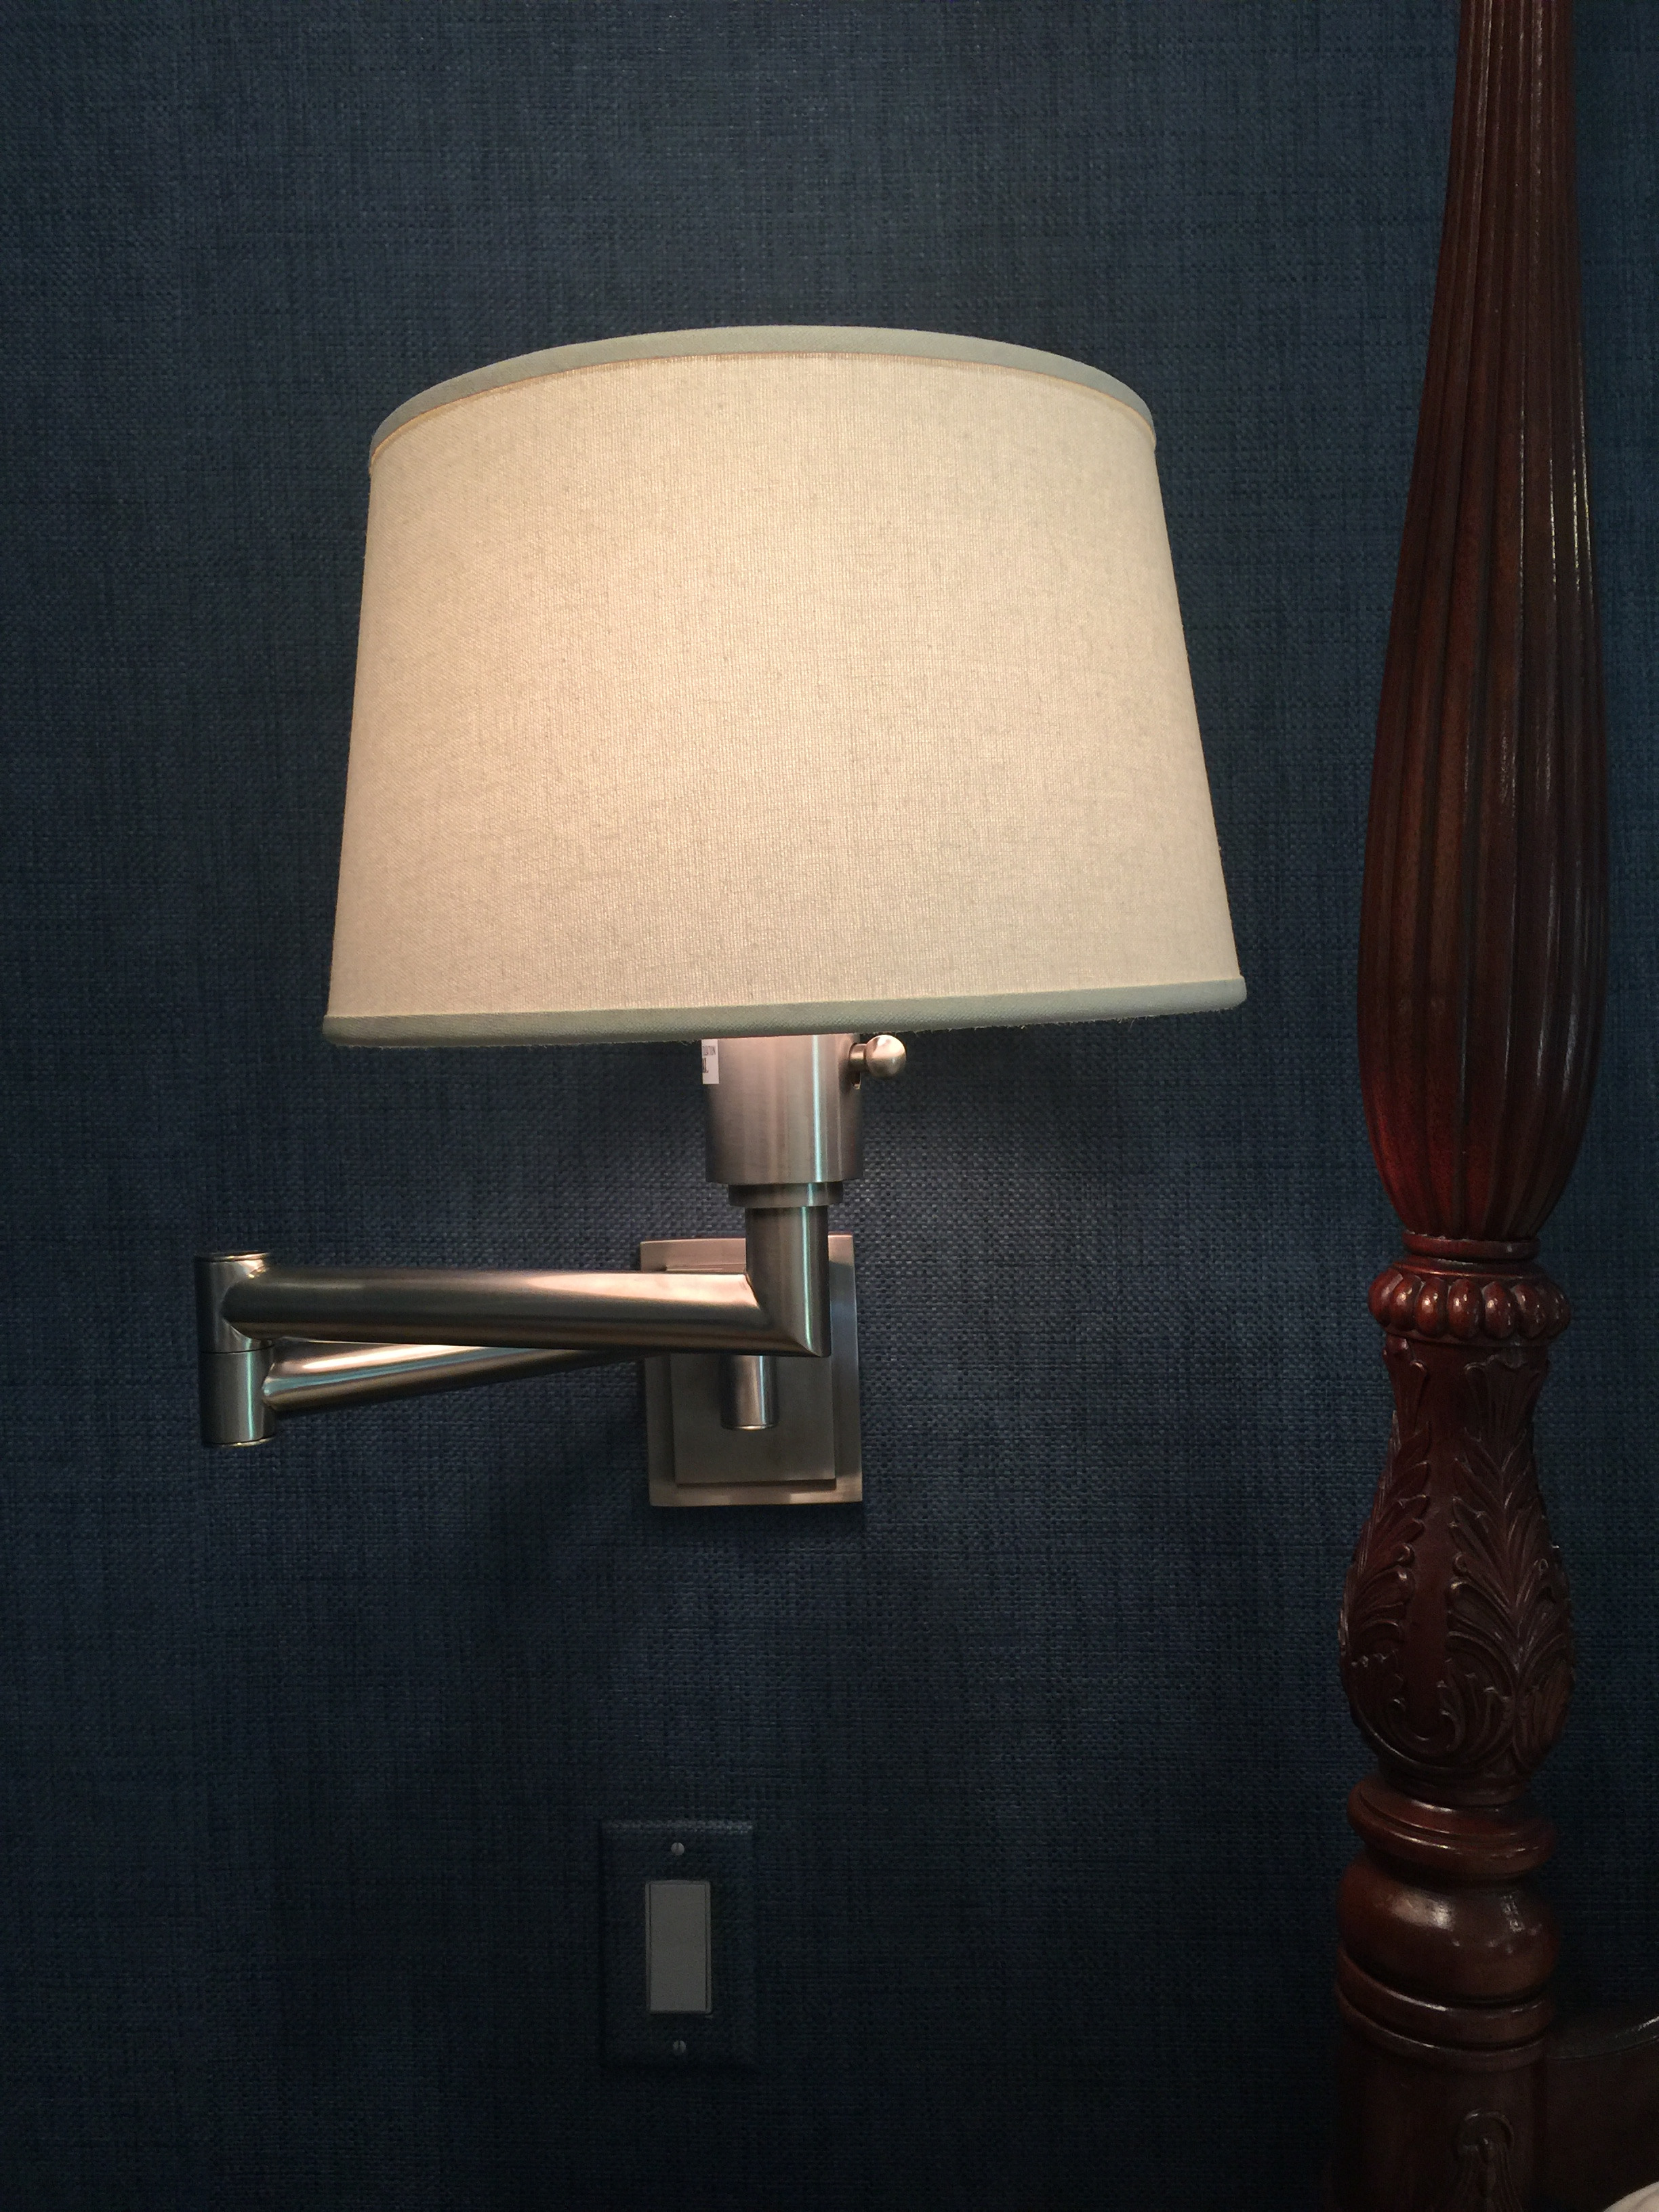 Wall mount lamps with dimmers on grasscloth wallcovering - Designer: Carla Aston